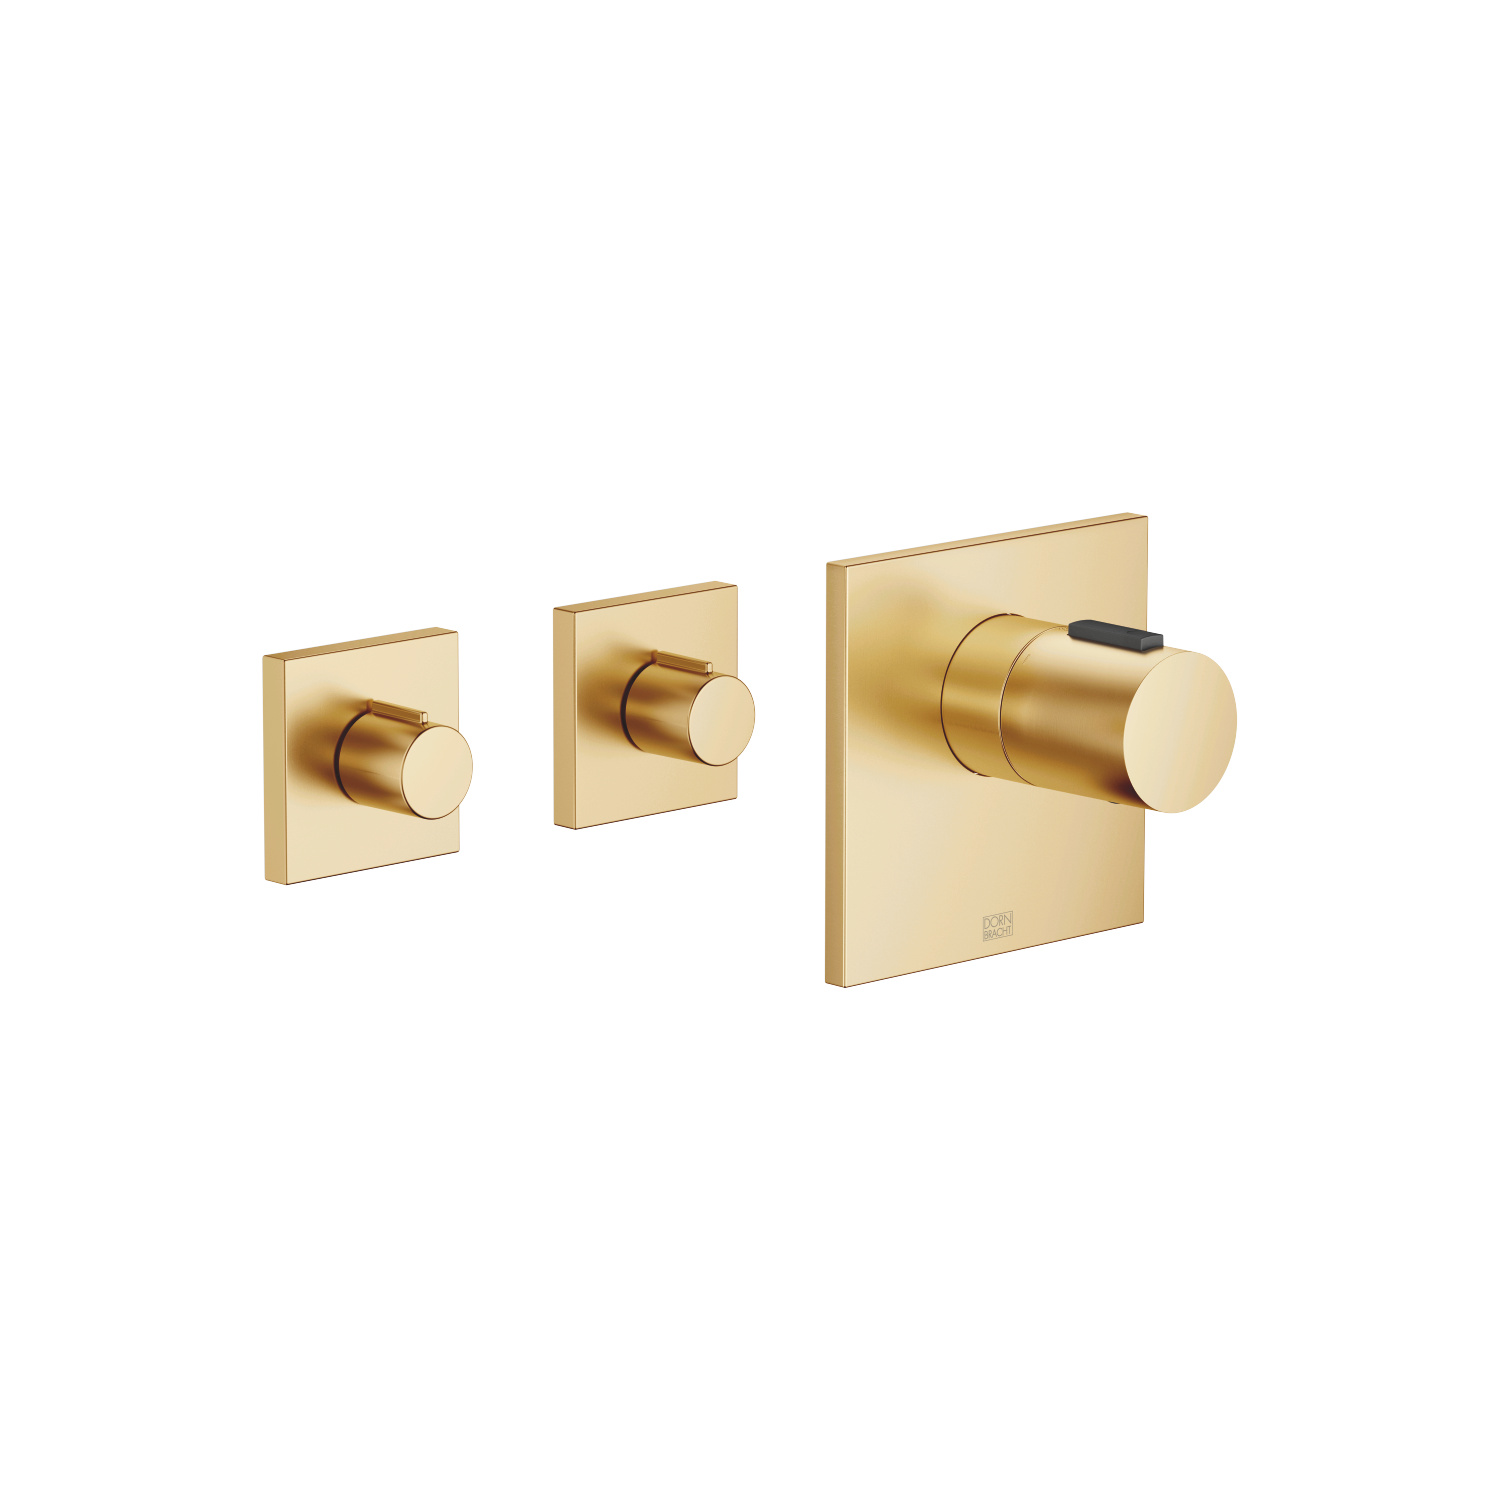 xTOOL Thermostat module with 2 valves - brushed Durabrass